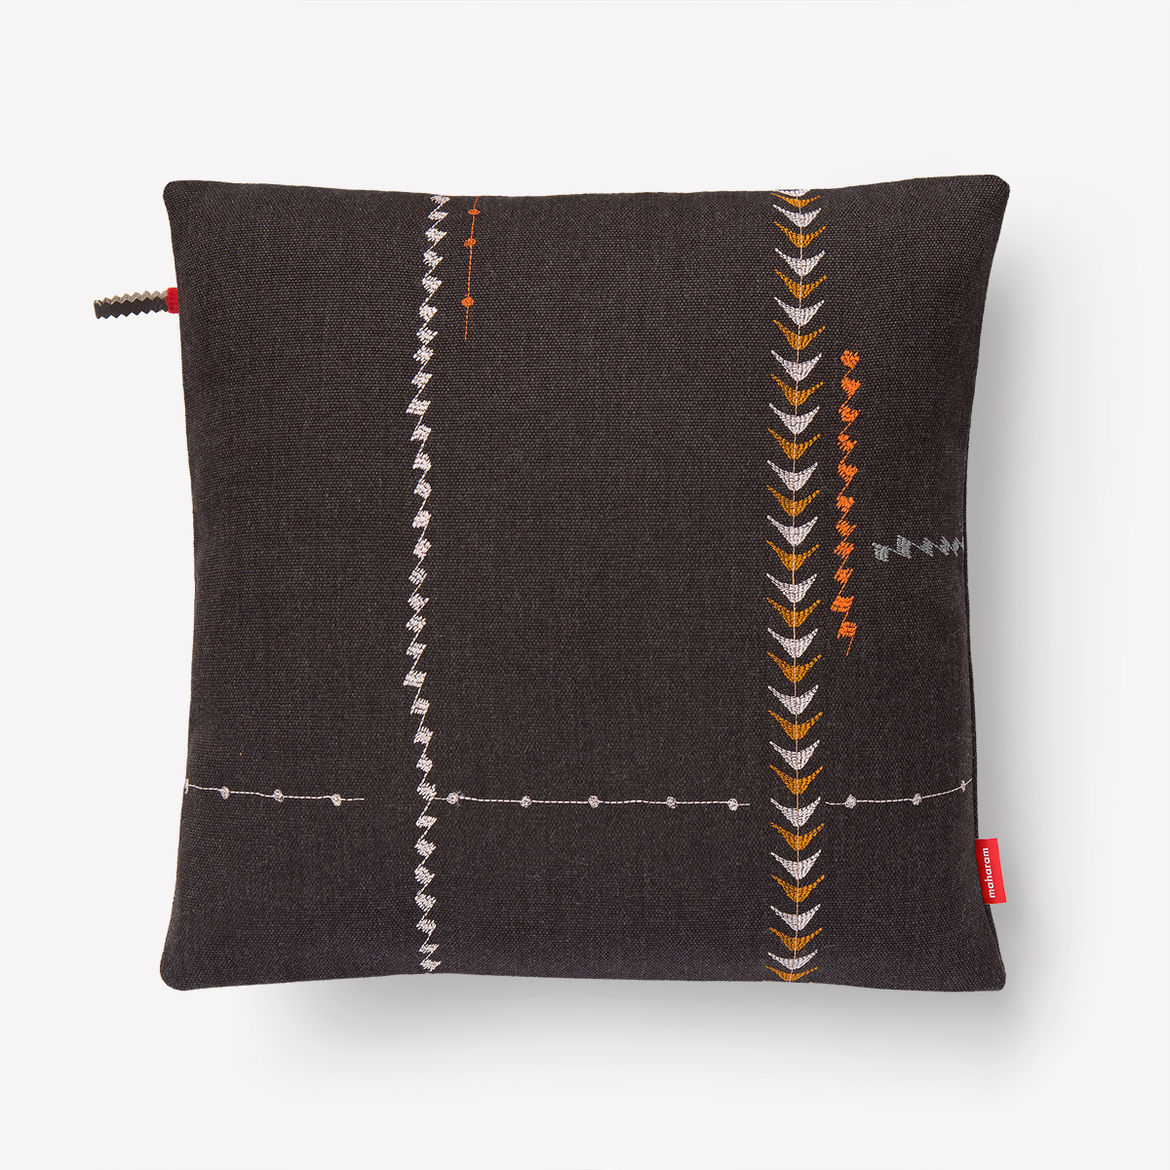 modern pillow by hella jongerius